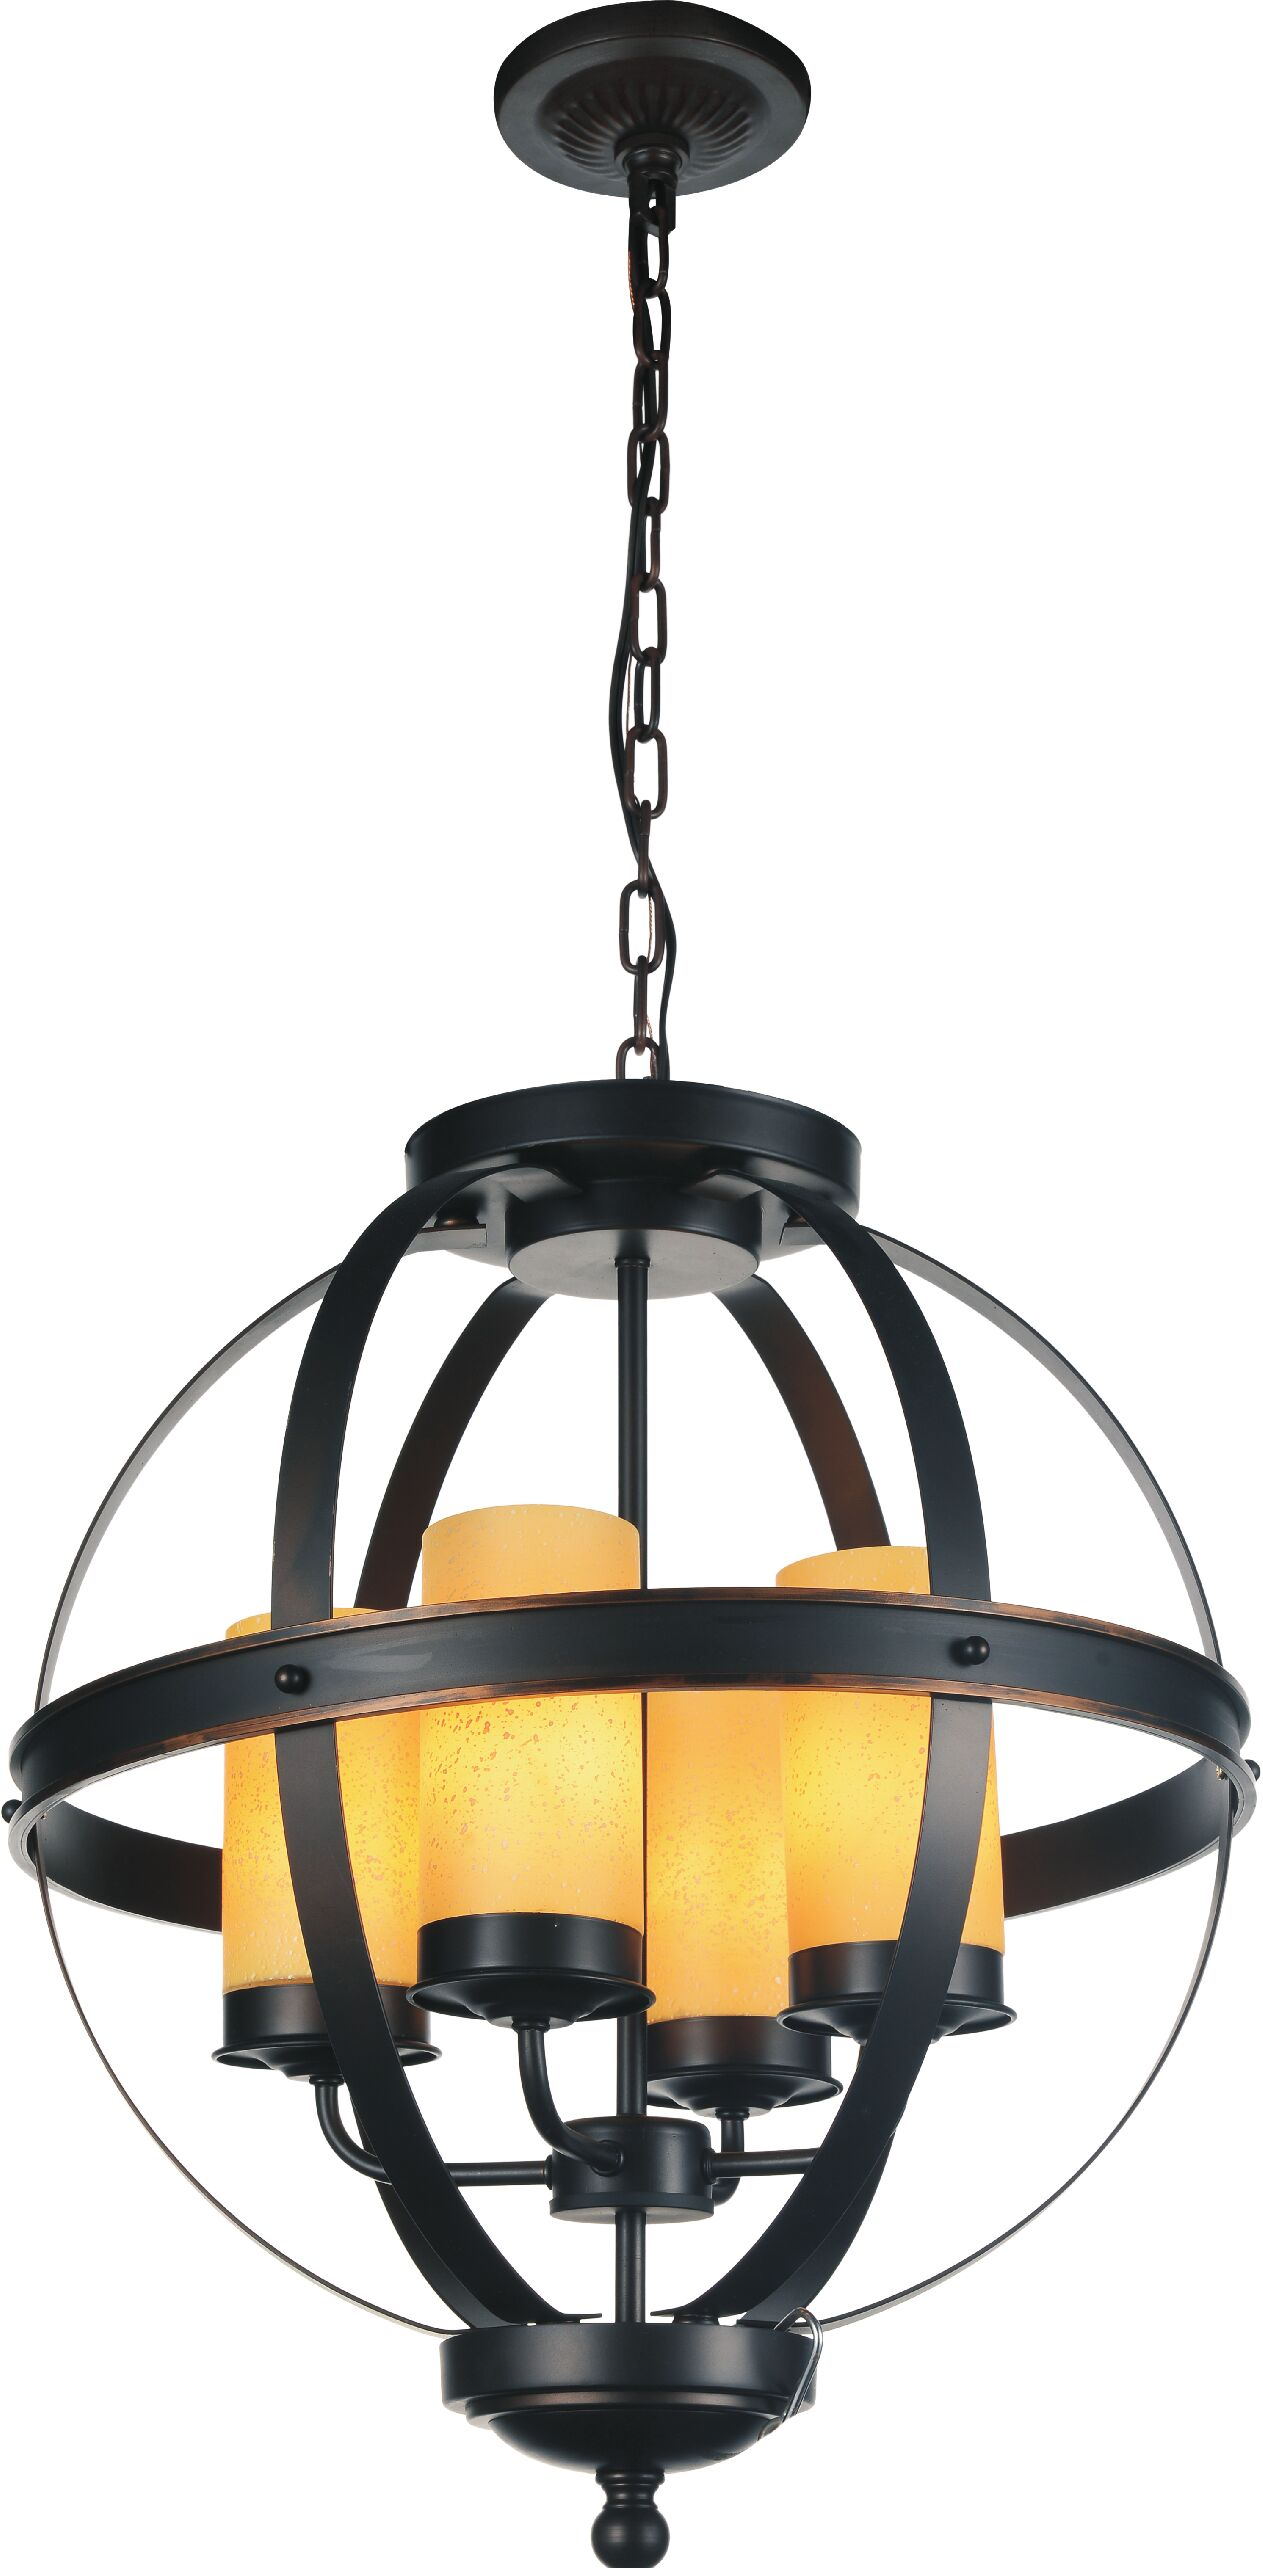 Irene 4-Light Globe Chandelier